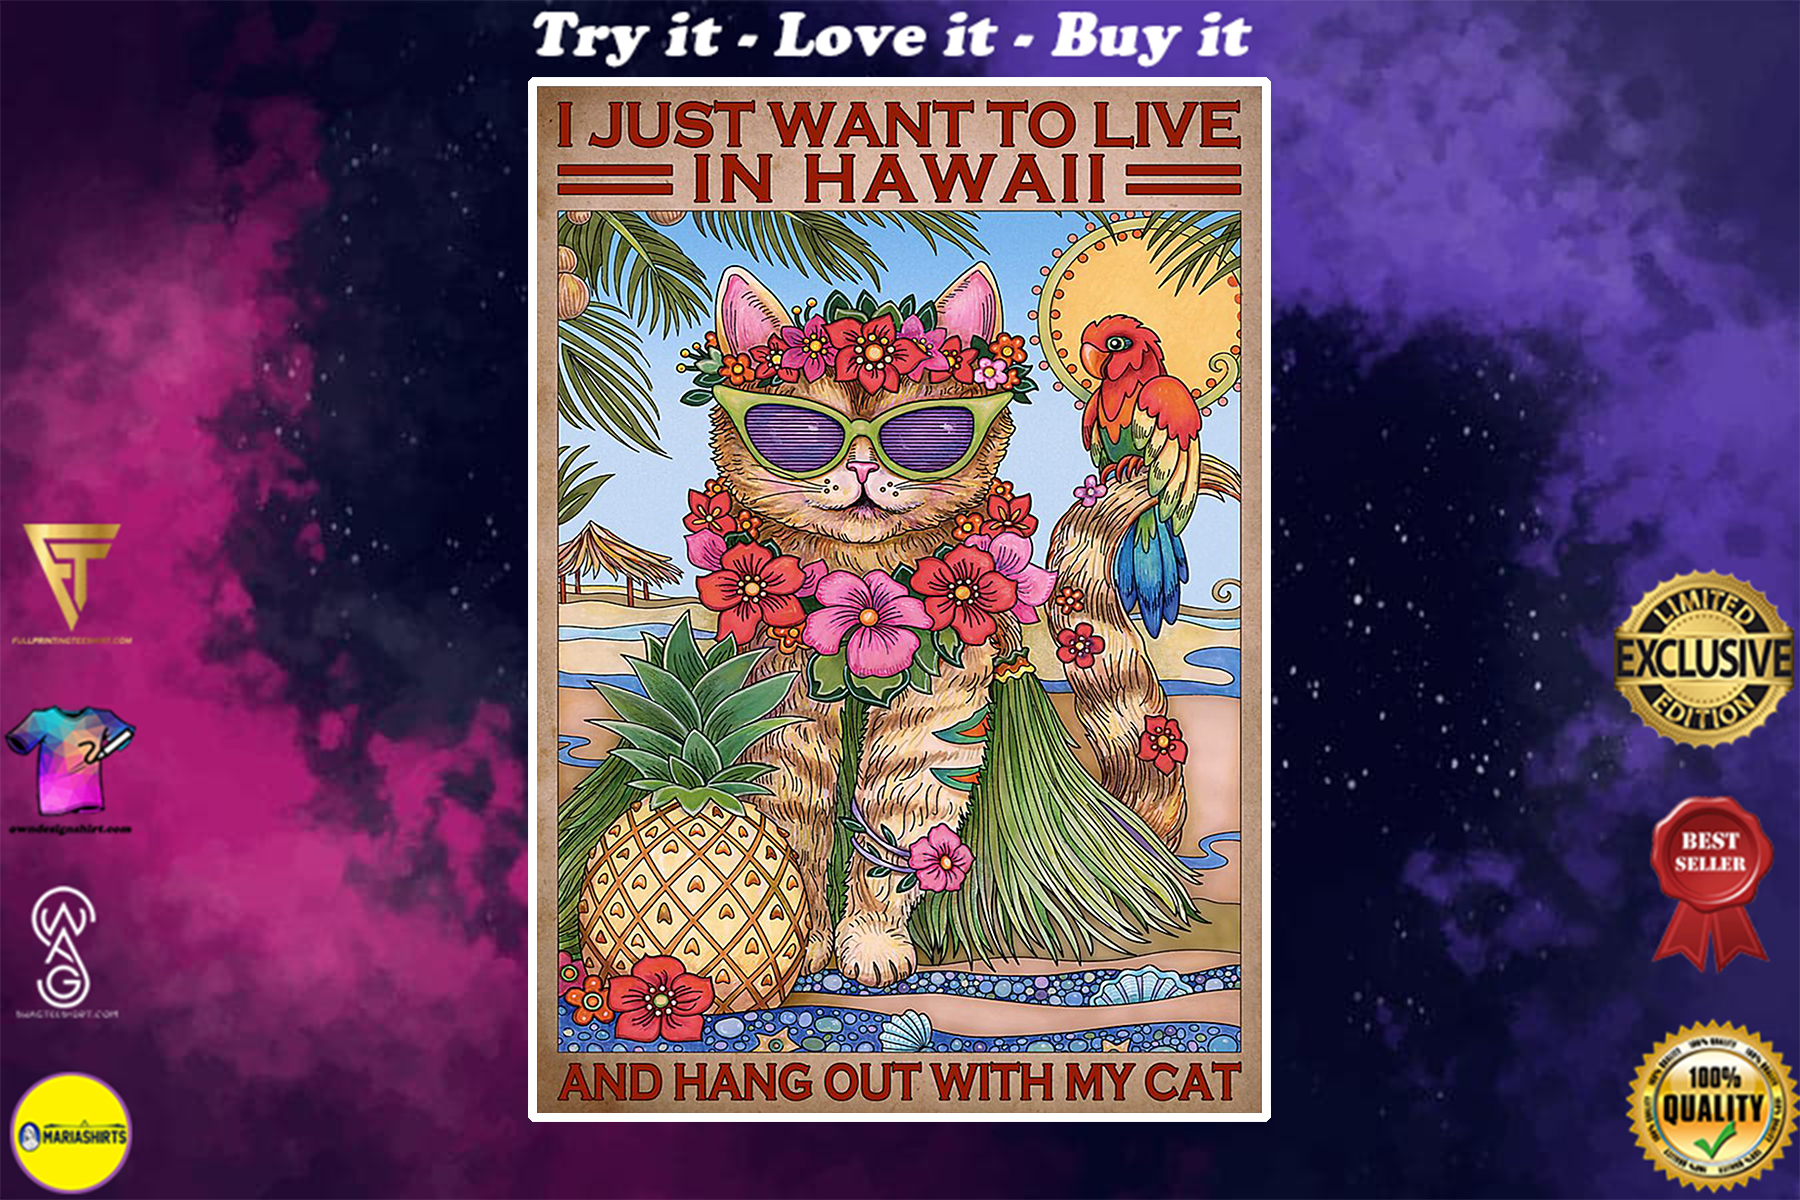 vintage i just want to live in hawaii and hang out with my cat poster poster